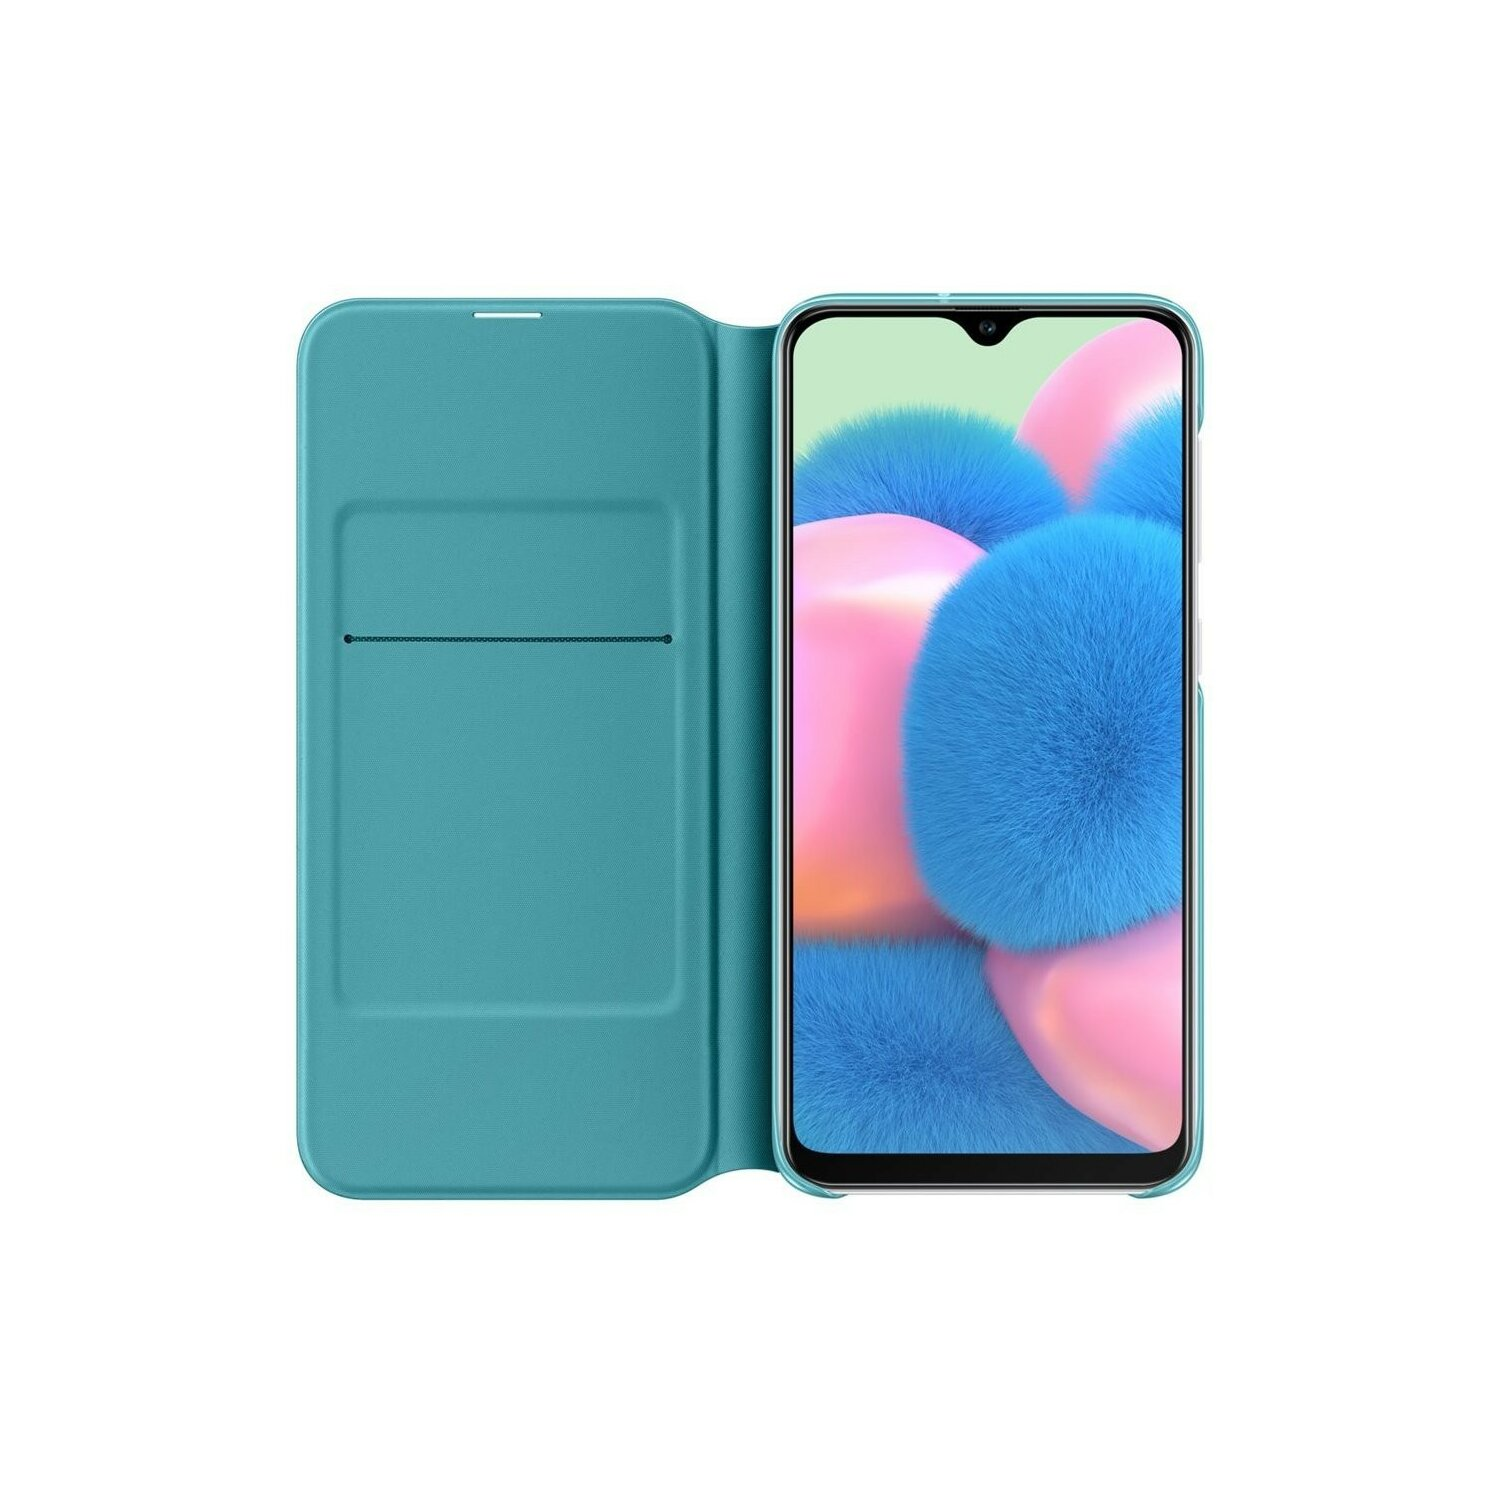 Etui SAMSUNG Wallet Cover do Galaxy A30s Biały EF-WA307PWEGWW